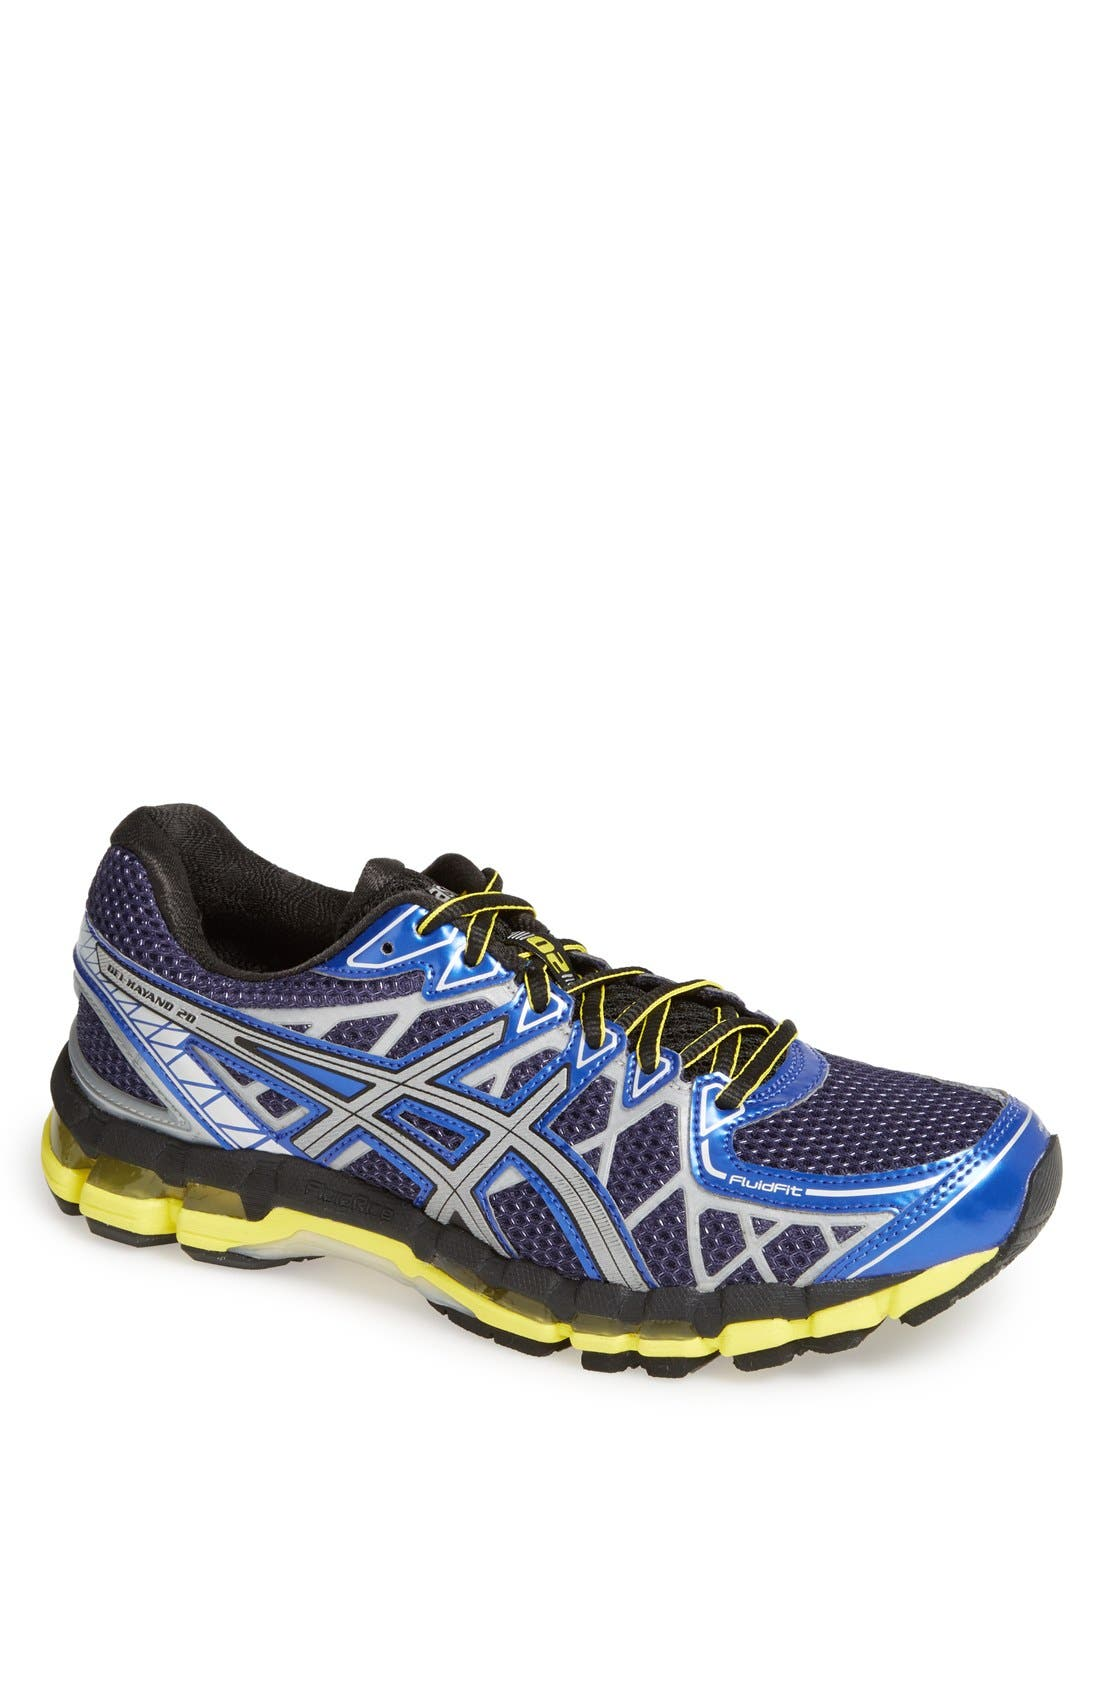 Alternate Image 1 Selected - ASICS® 'GEL-Kayano® 20 Lite' Running Shoe (Men)